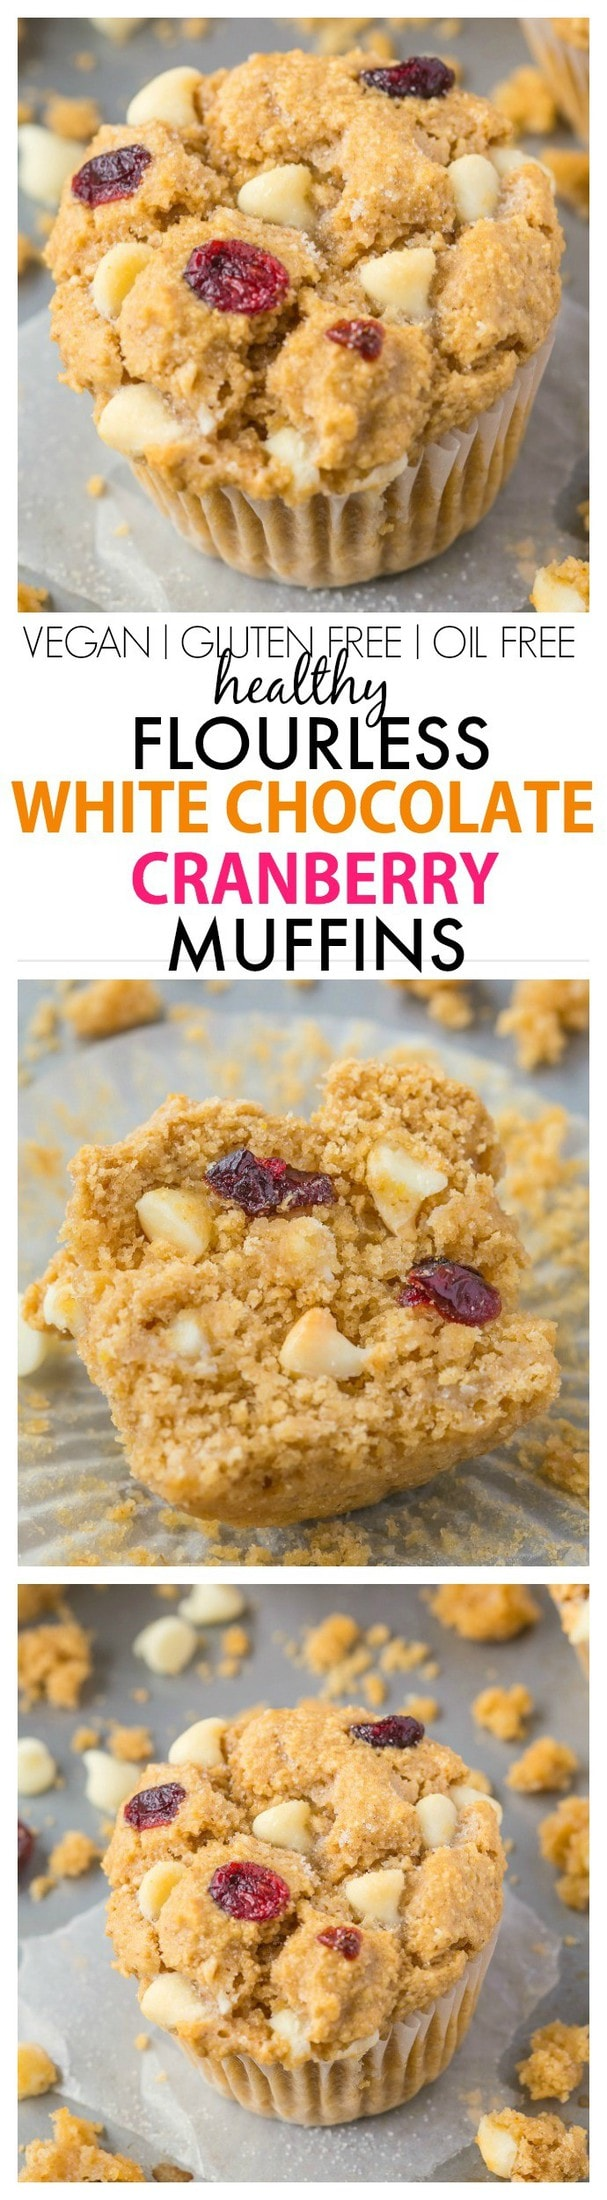 Moist, light and fluffy on the inside, you won't believe these flourless white chocolate cranberry muffins have NO butter, oil, eggs or refined sugar in them! {vegan, gluten free recipe}